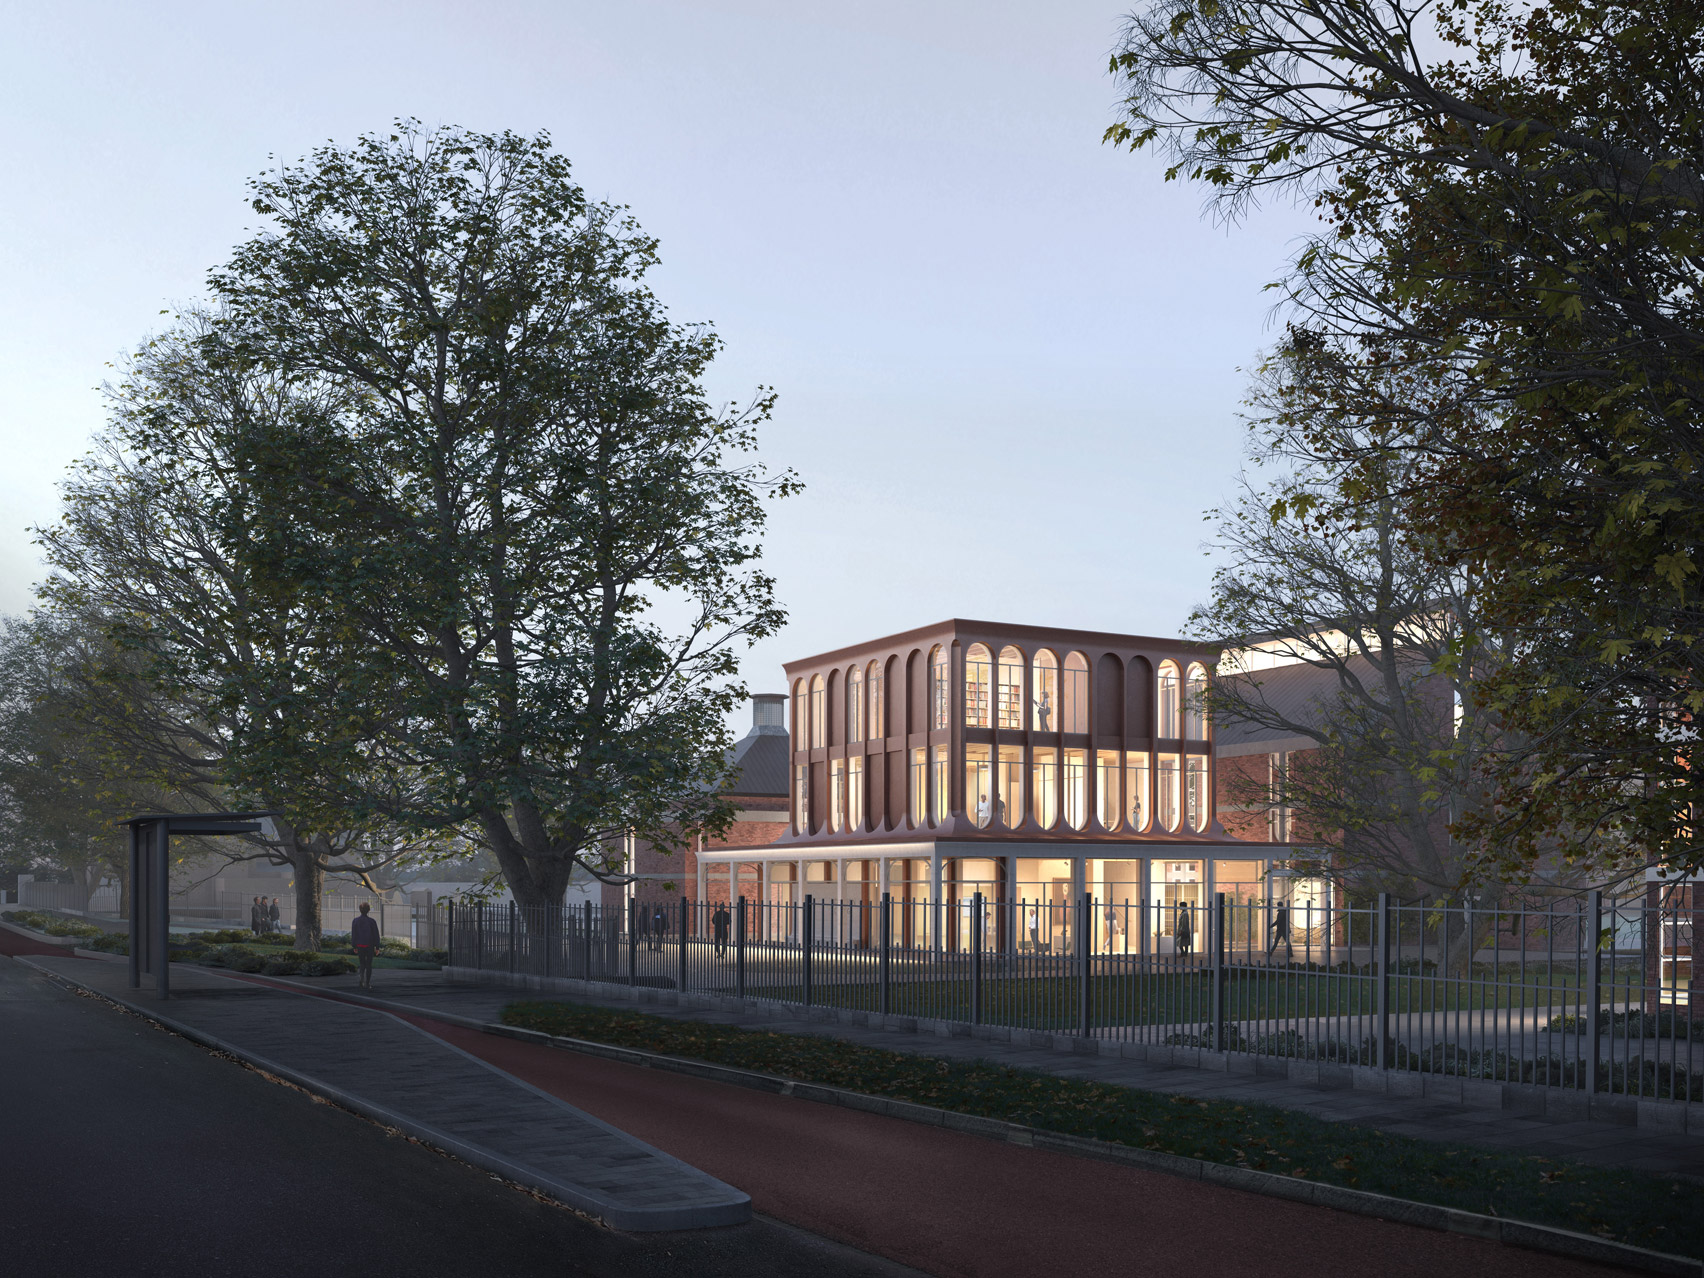 A visual of Homerton College's new entrance